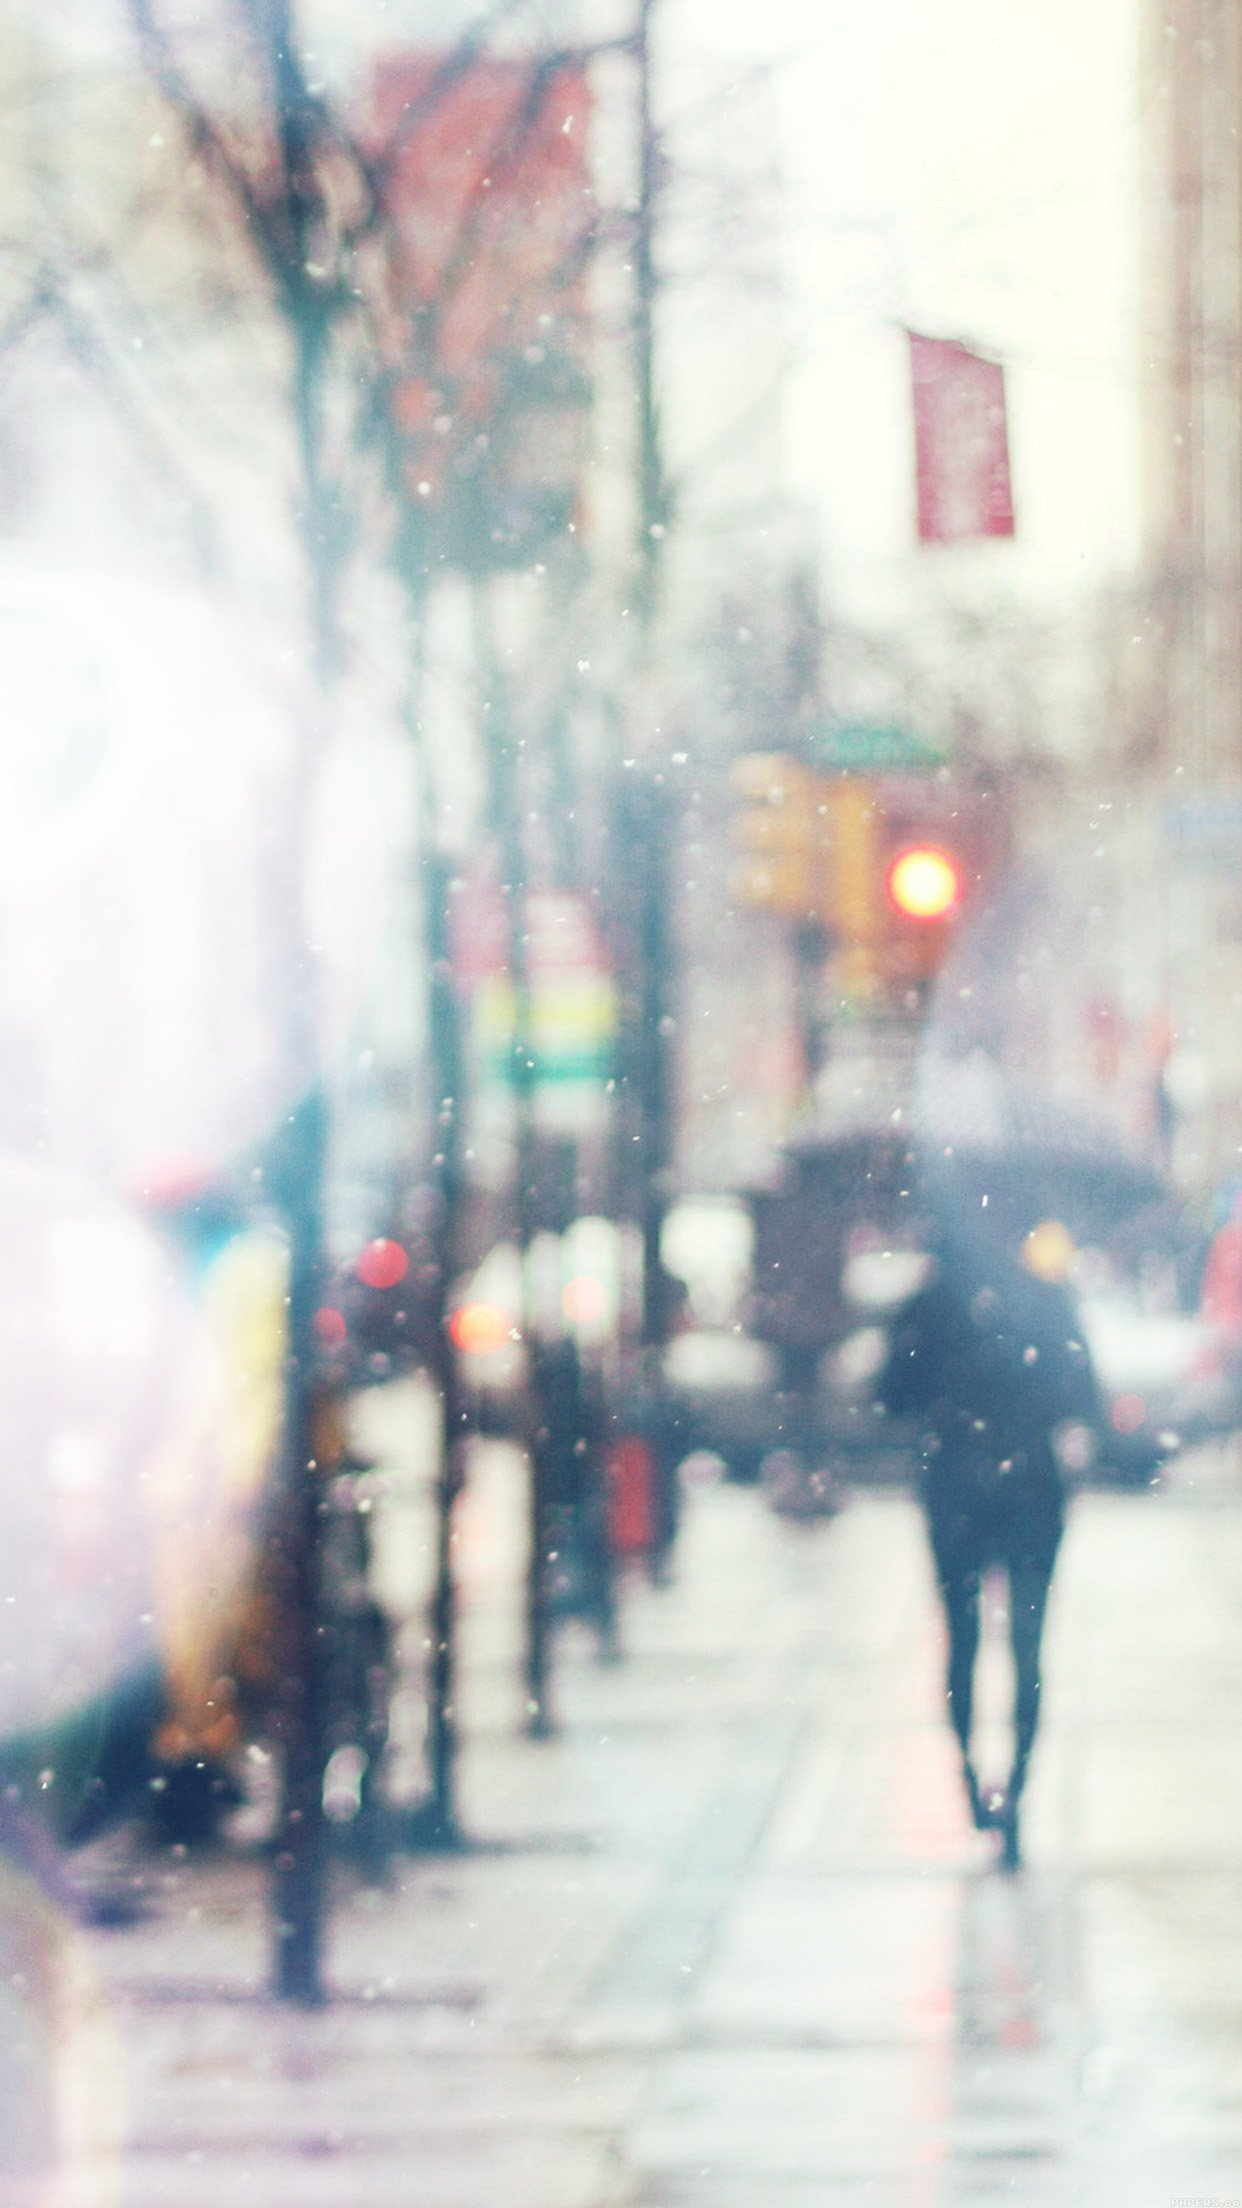 Snow Street Bokeh Flare Winter Walk City Day Nature Android Wallpaper